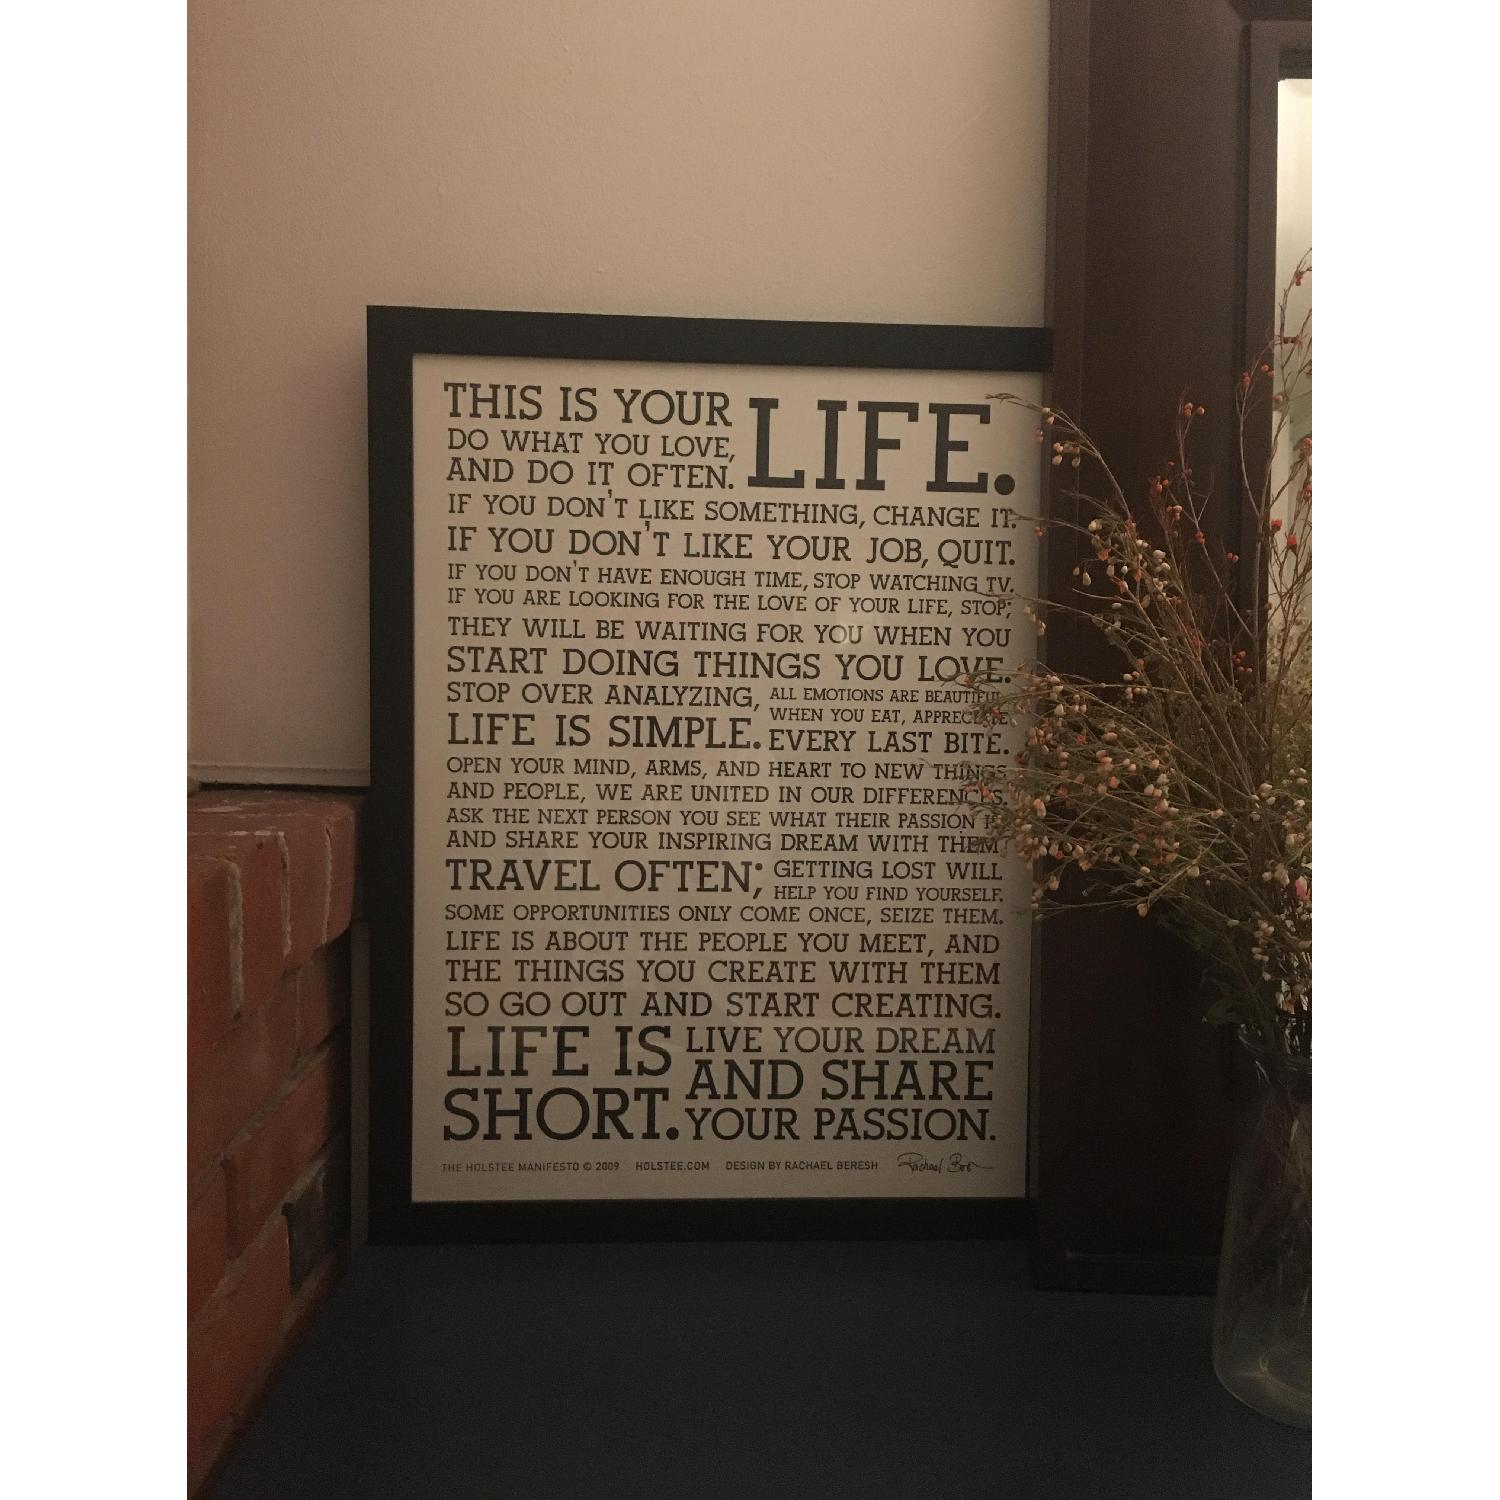 Framed Motivational Poster - This is Your Life - image-2